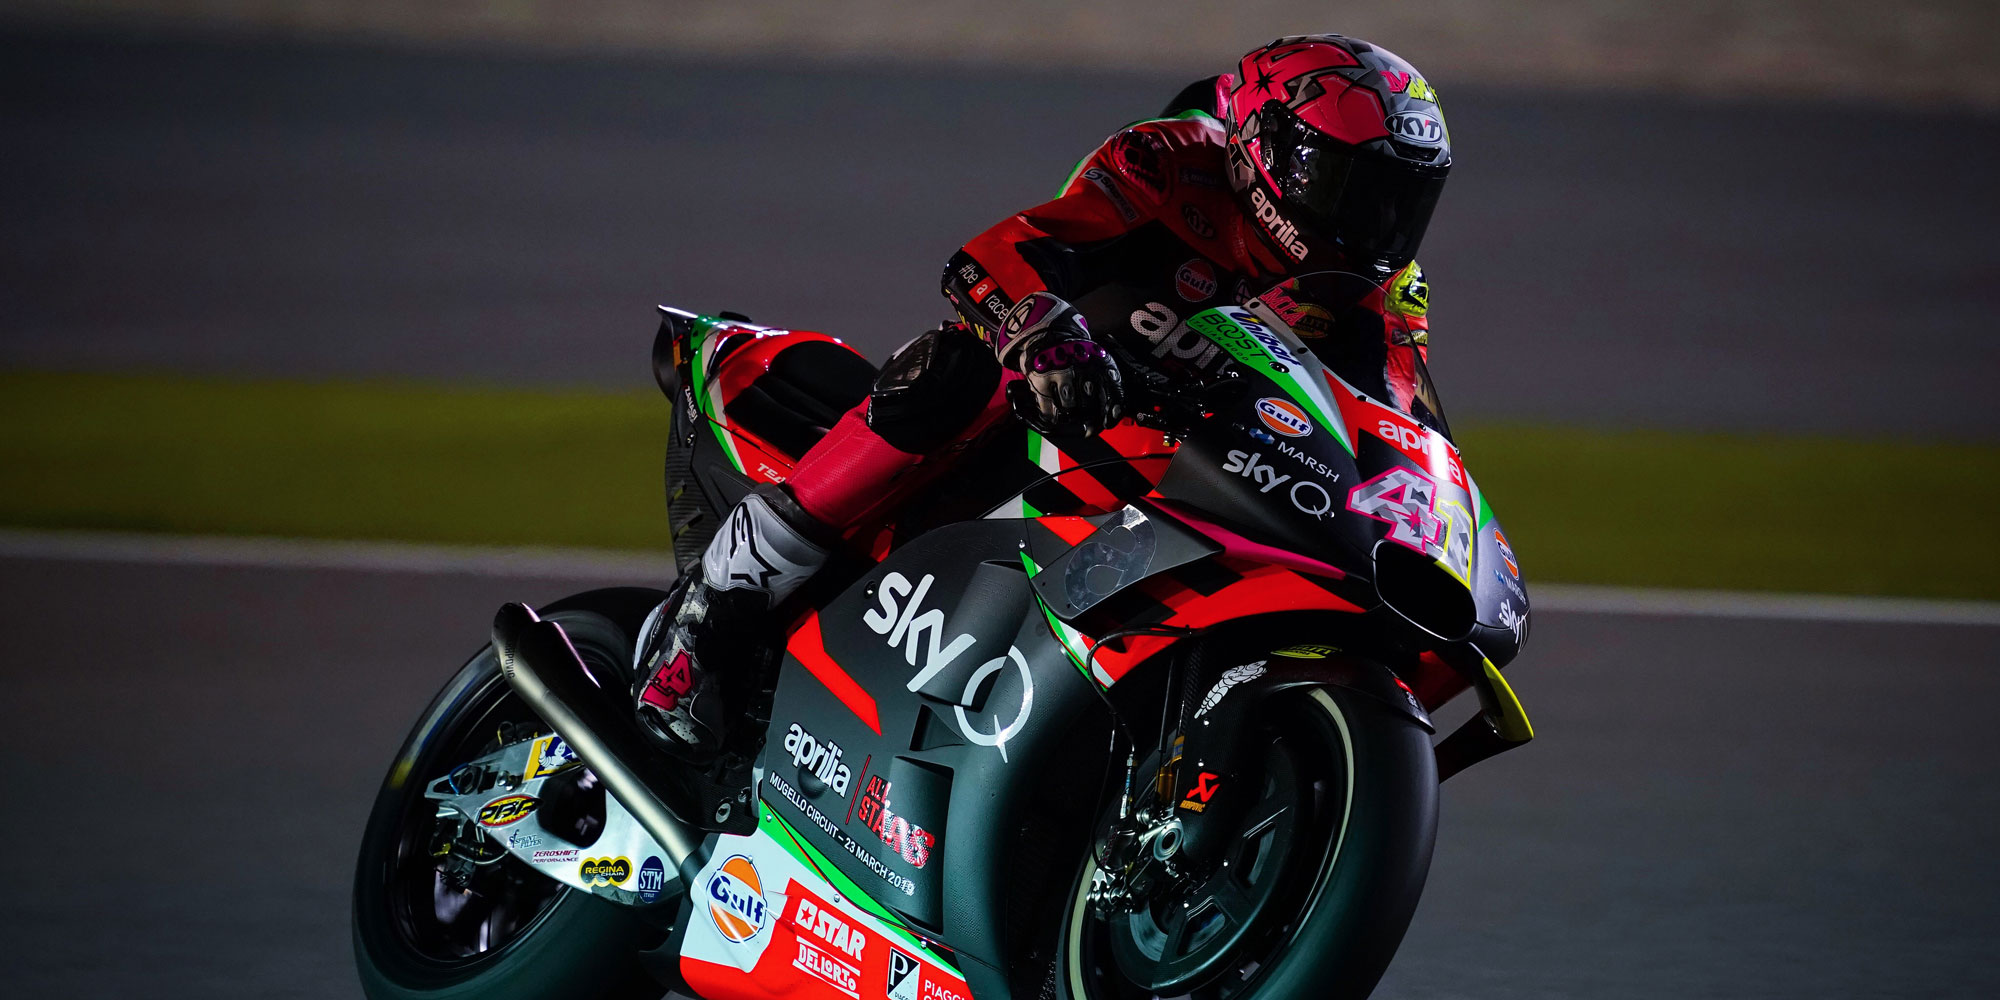 Zeroshift Performance transmission used in MotoGP race